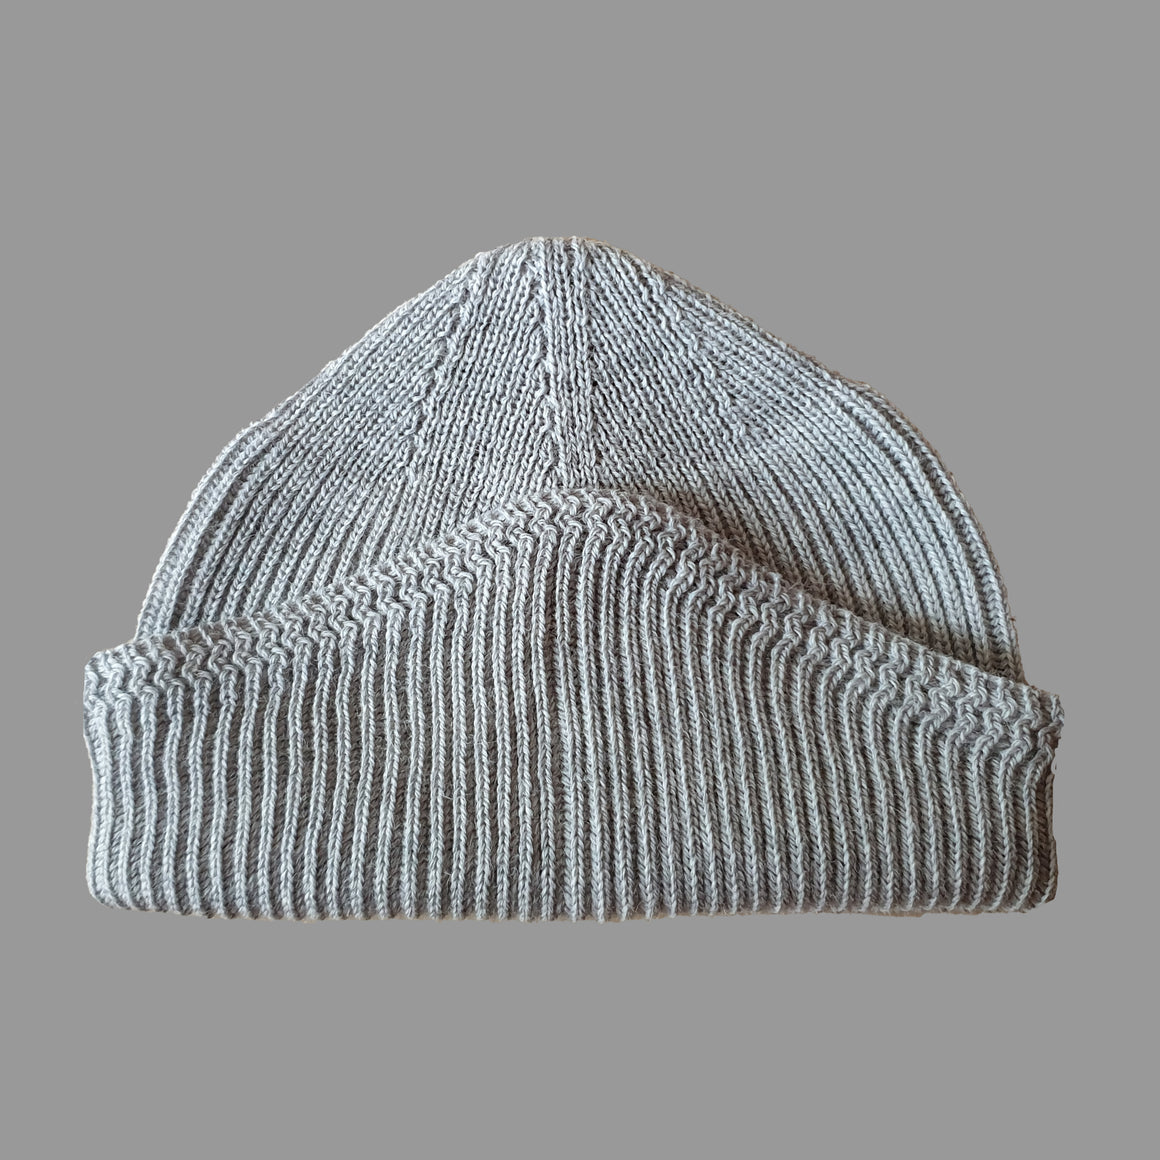 N.S.C DECK HAT -  MID GREY